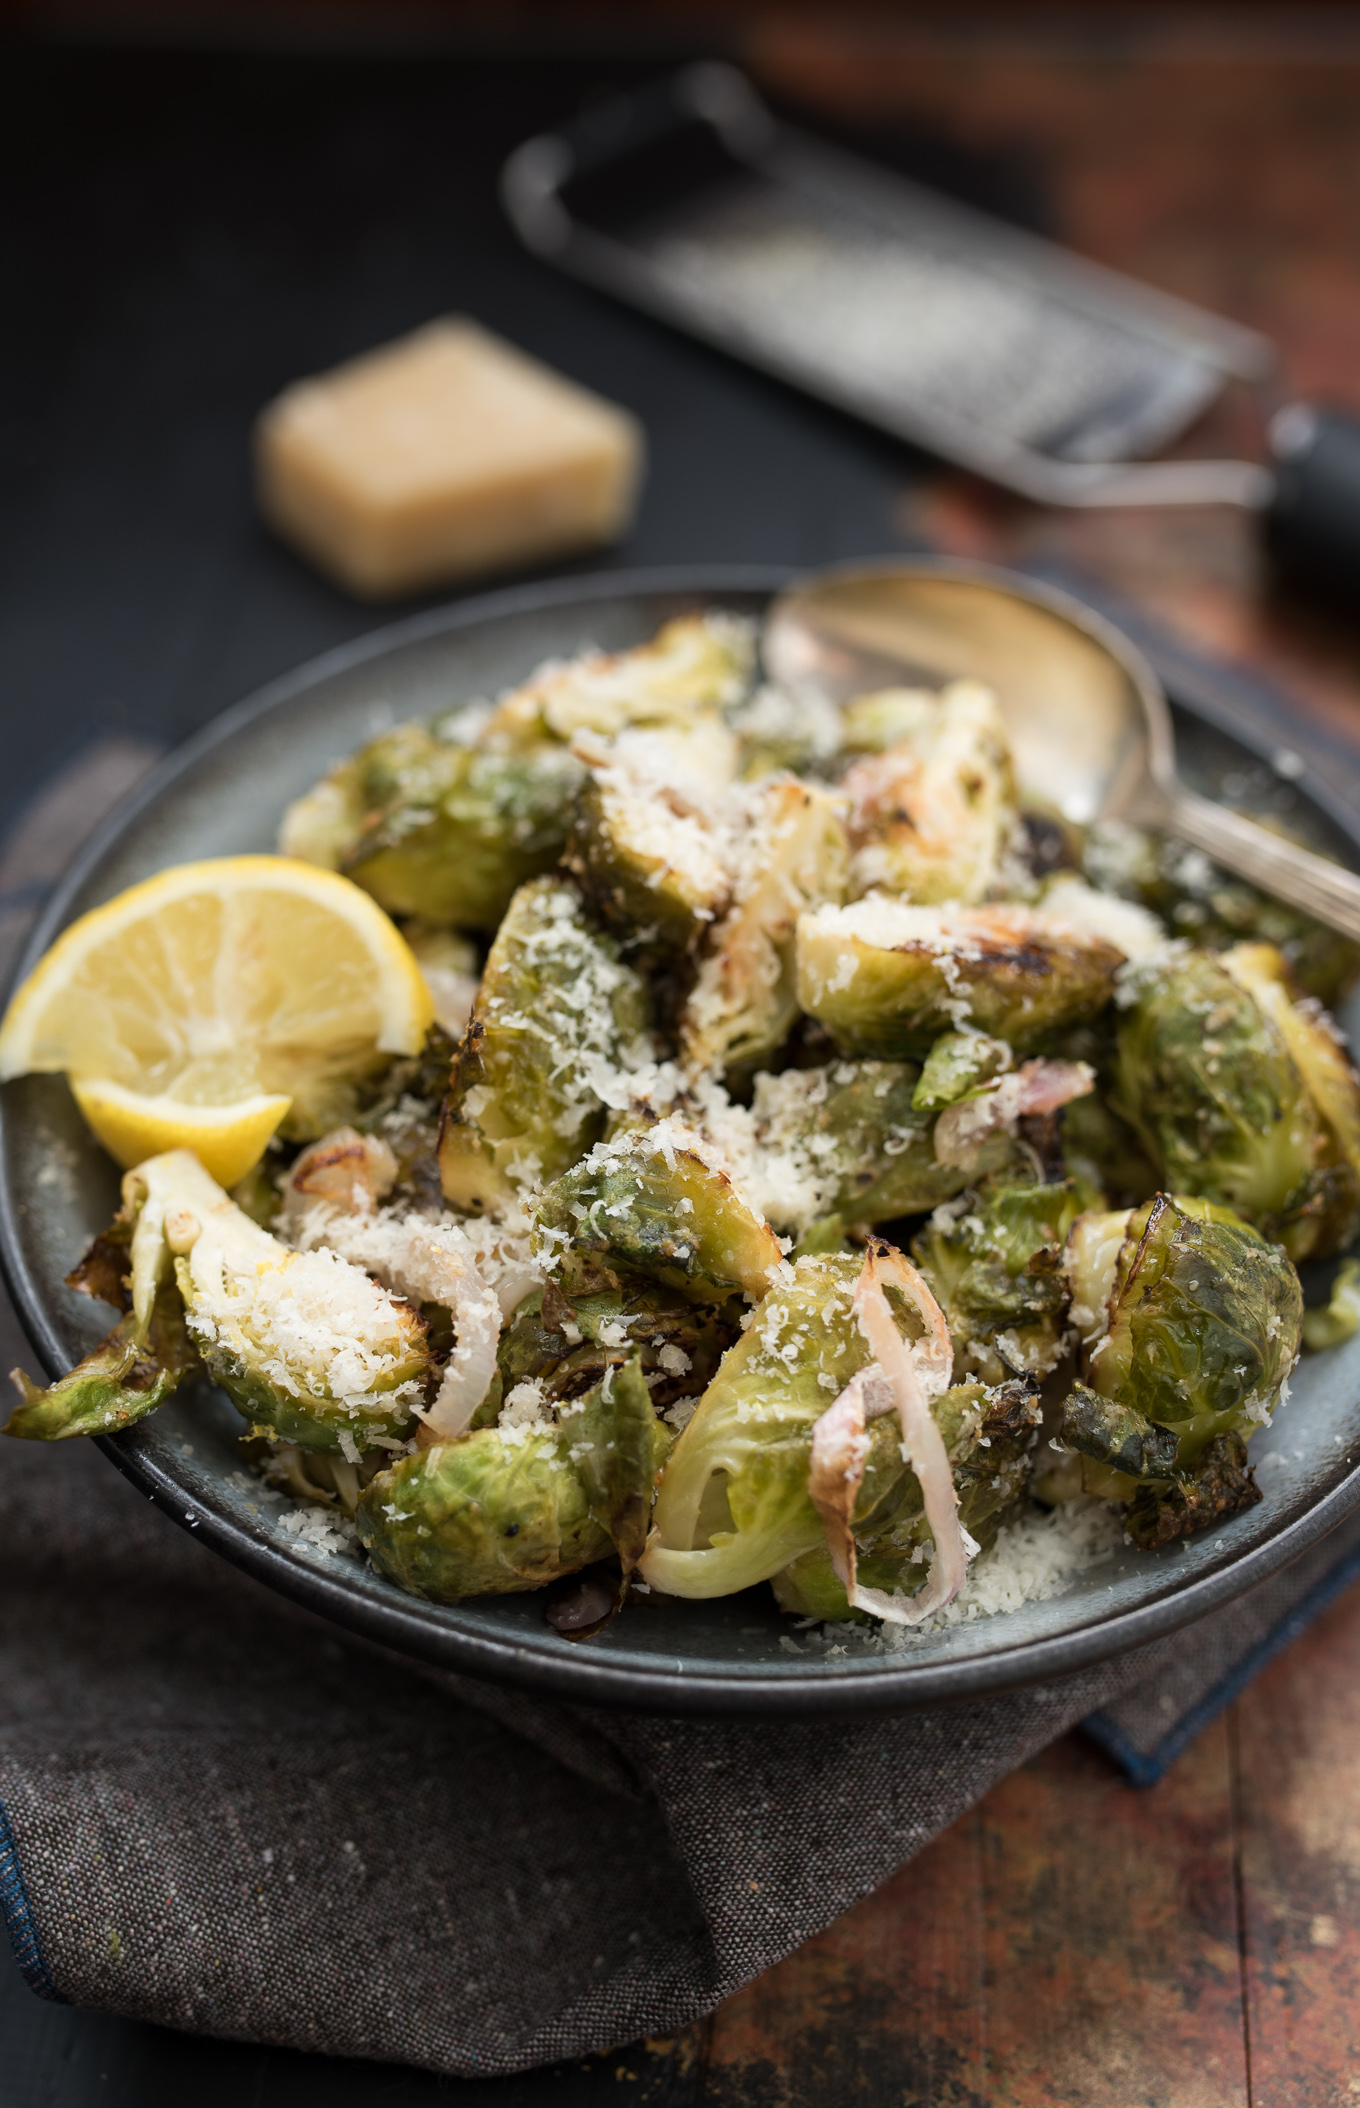 Parmesan Lemon Brussels Sprouts with Shallots are a gluten-free, low calorie, healthy side that work well with a variety of main dishes.